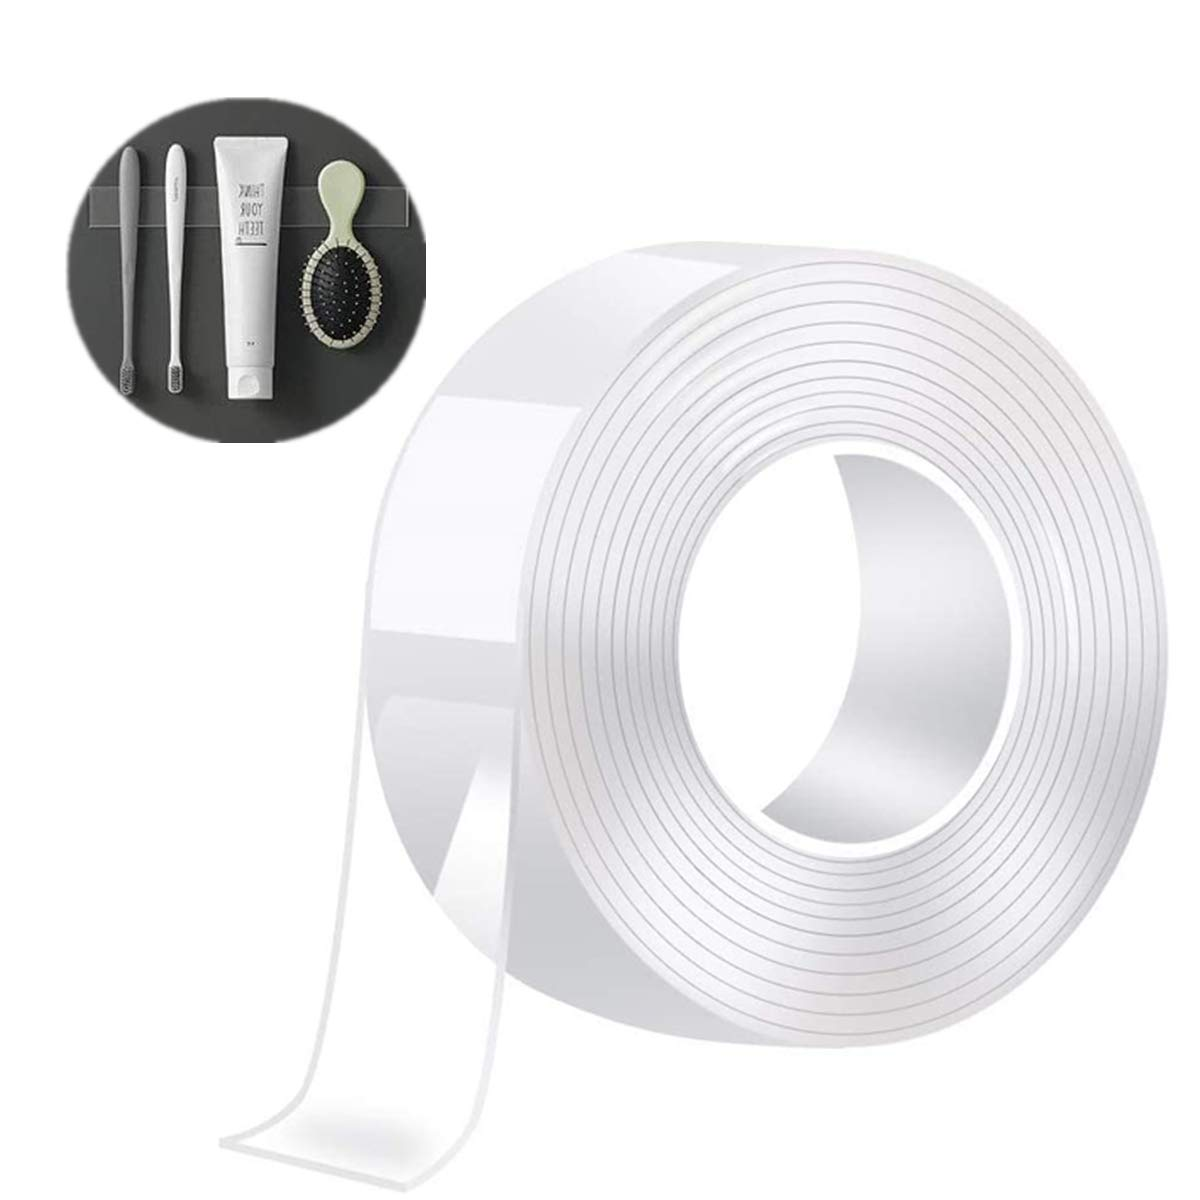 Multipurpose Removable Traceless Adhesive Nano Wall Tape NANOUK Double Sided Tape Washable Strong Sticky Mounting Wall Tape Strips Transparent Tape for Fix Carpet Photo Poster 0.4x10FT